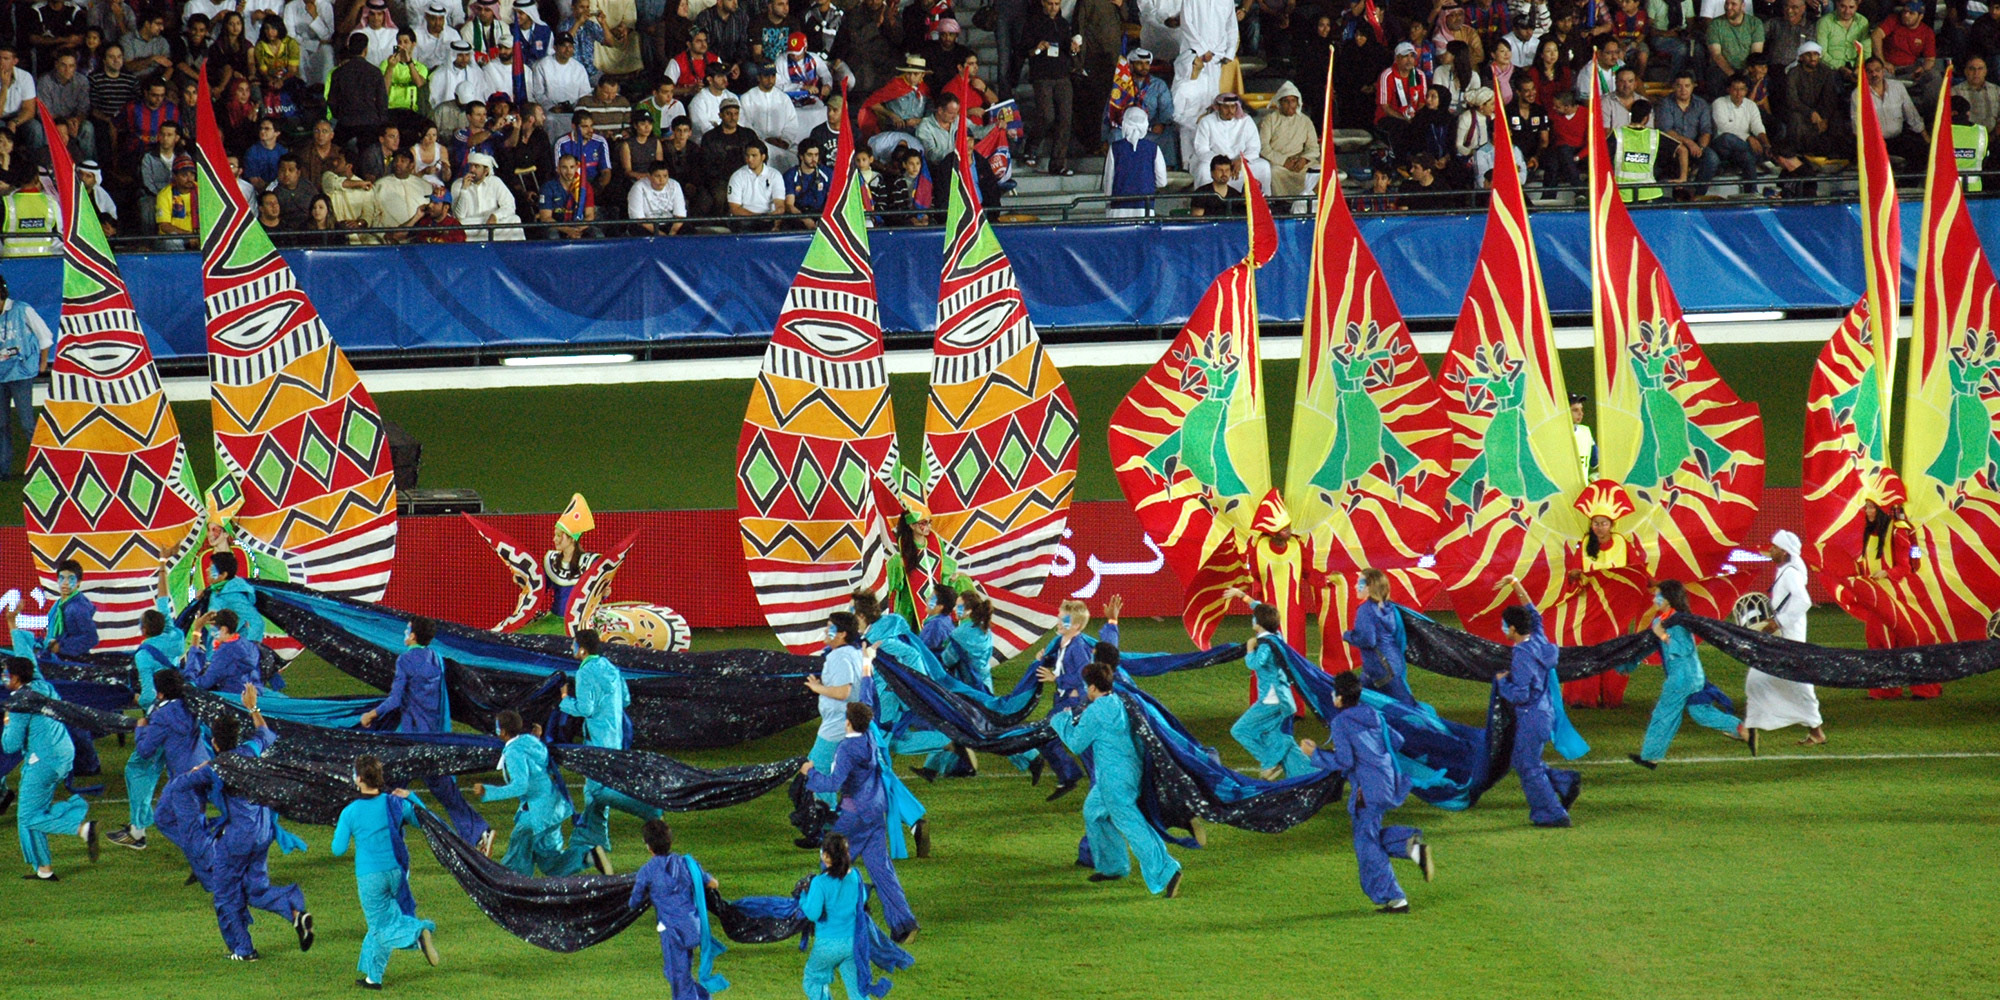 Large silk carnival costumes on a football pitch